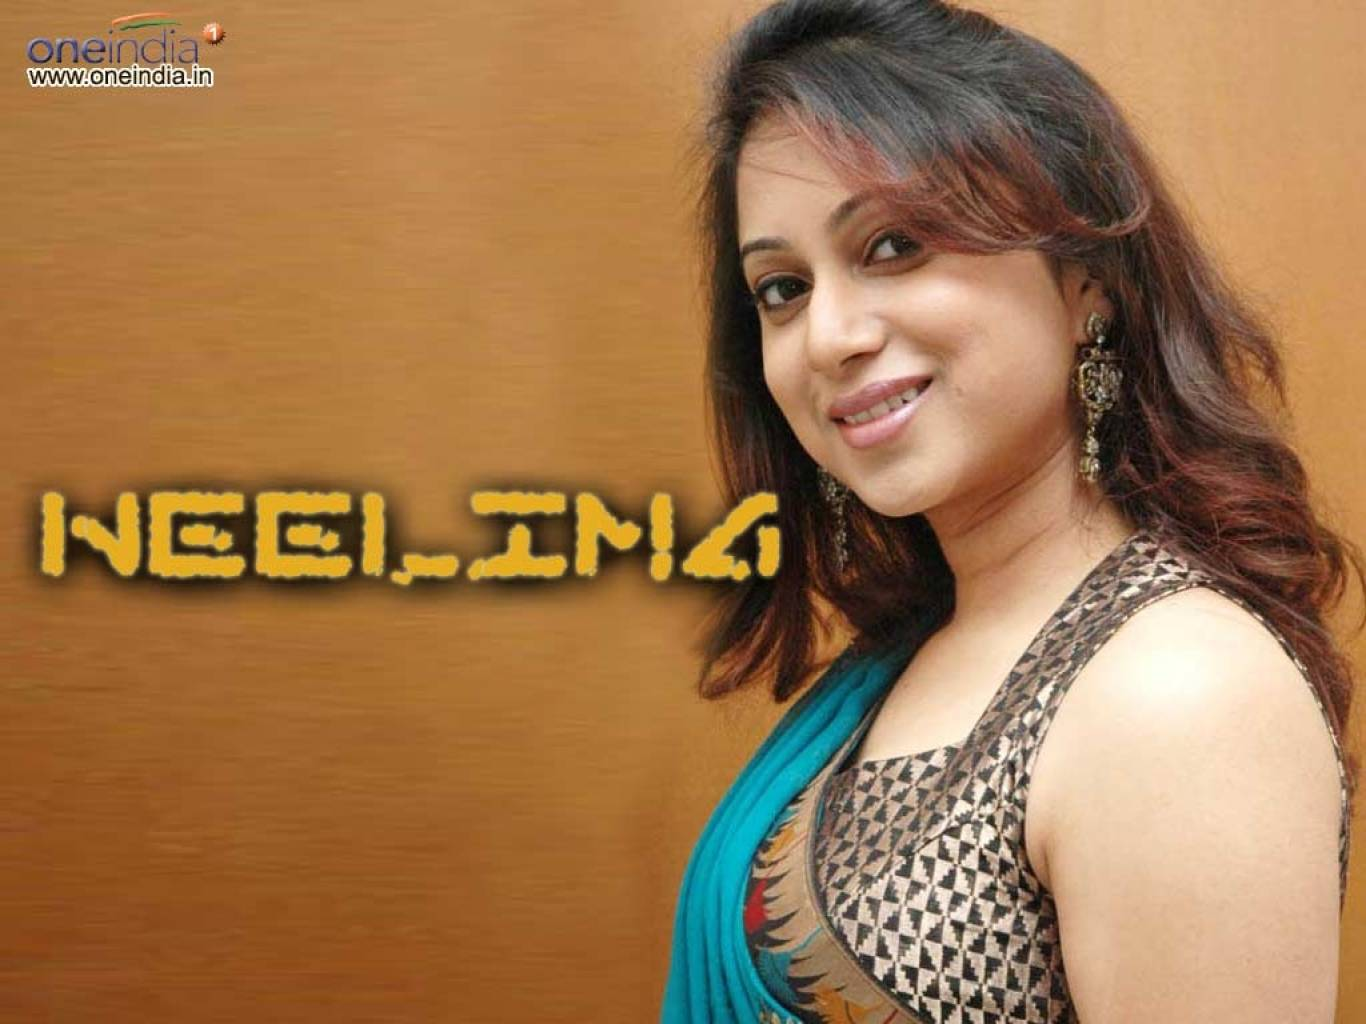 Neelima Wallpapers